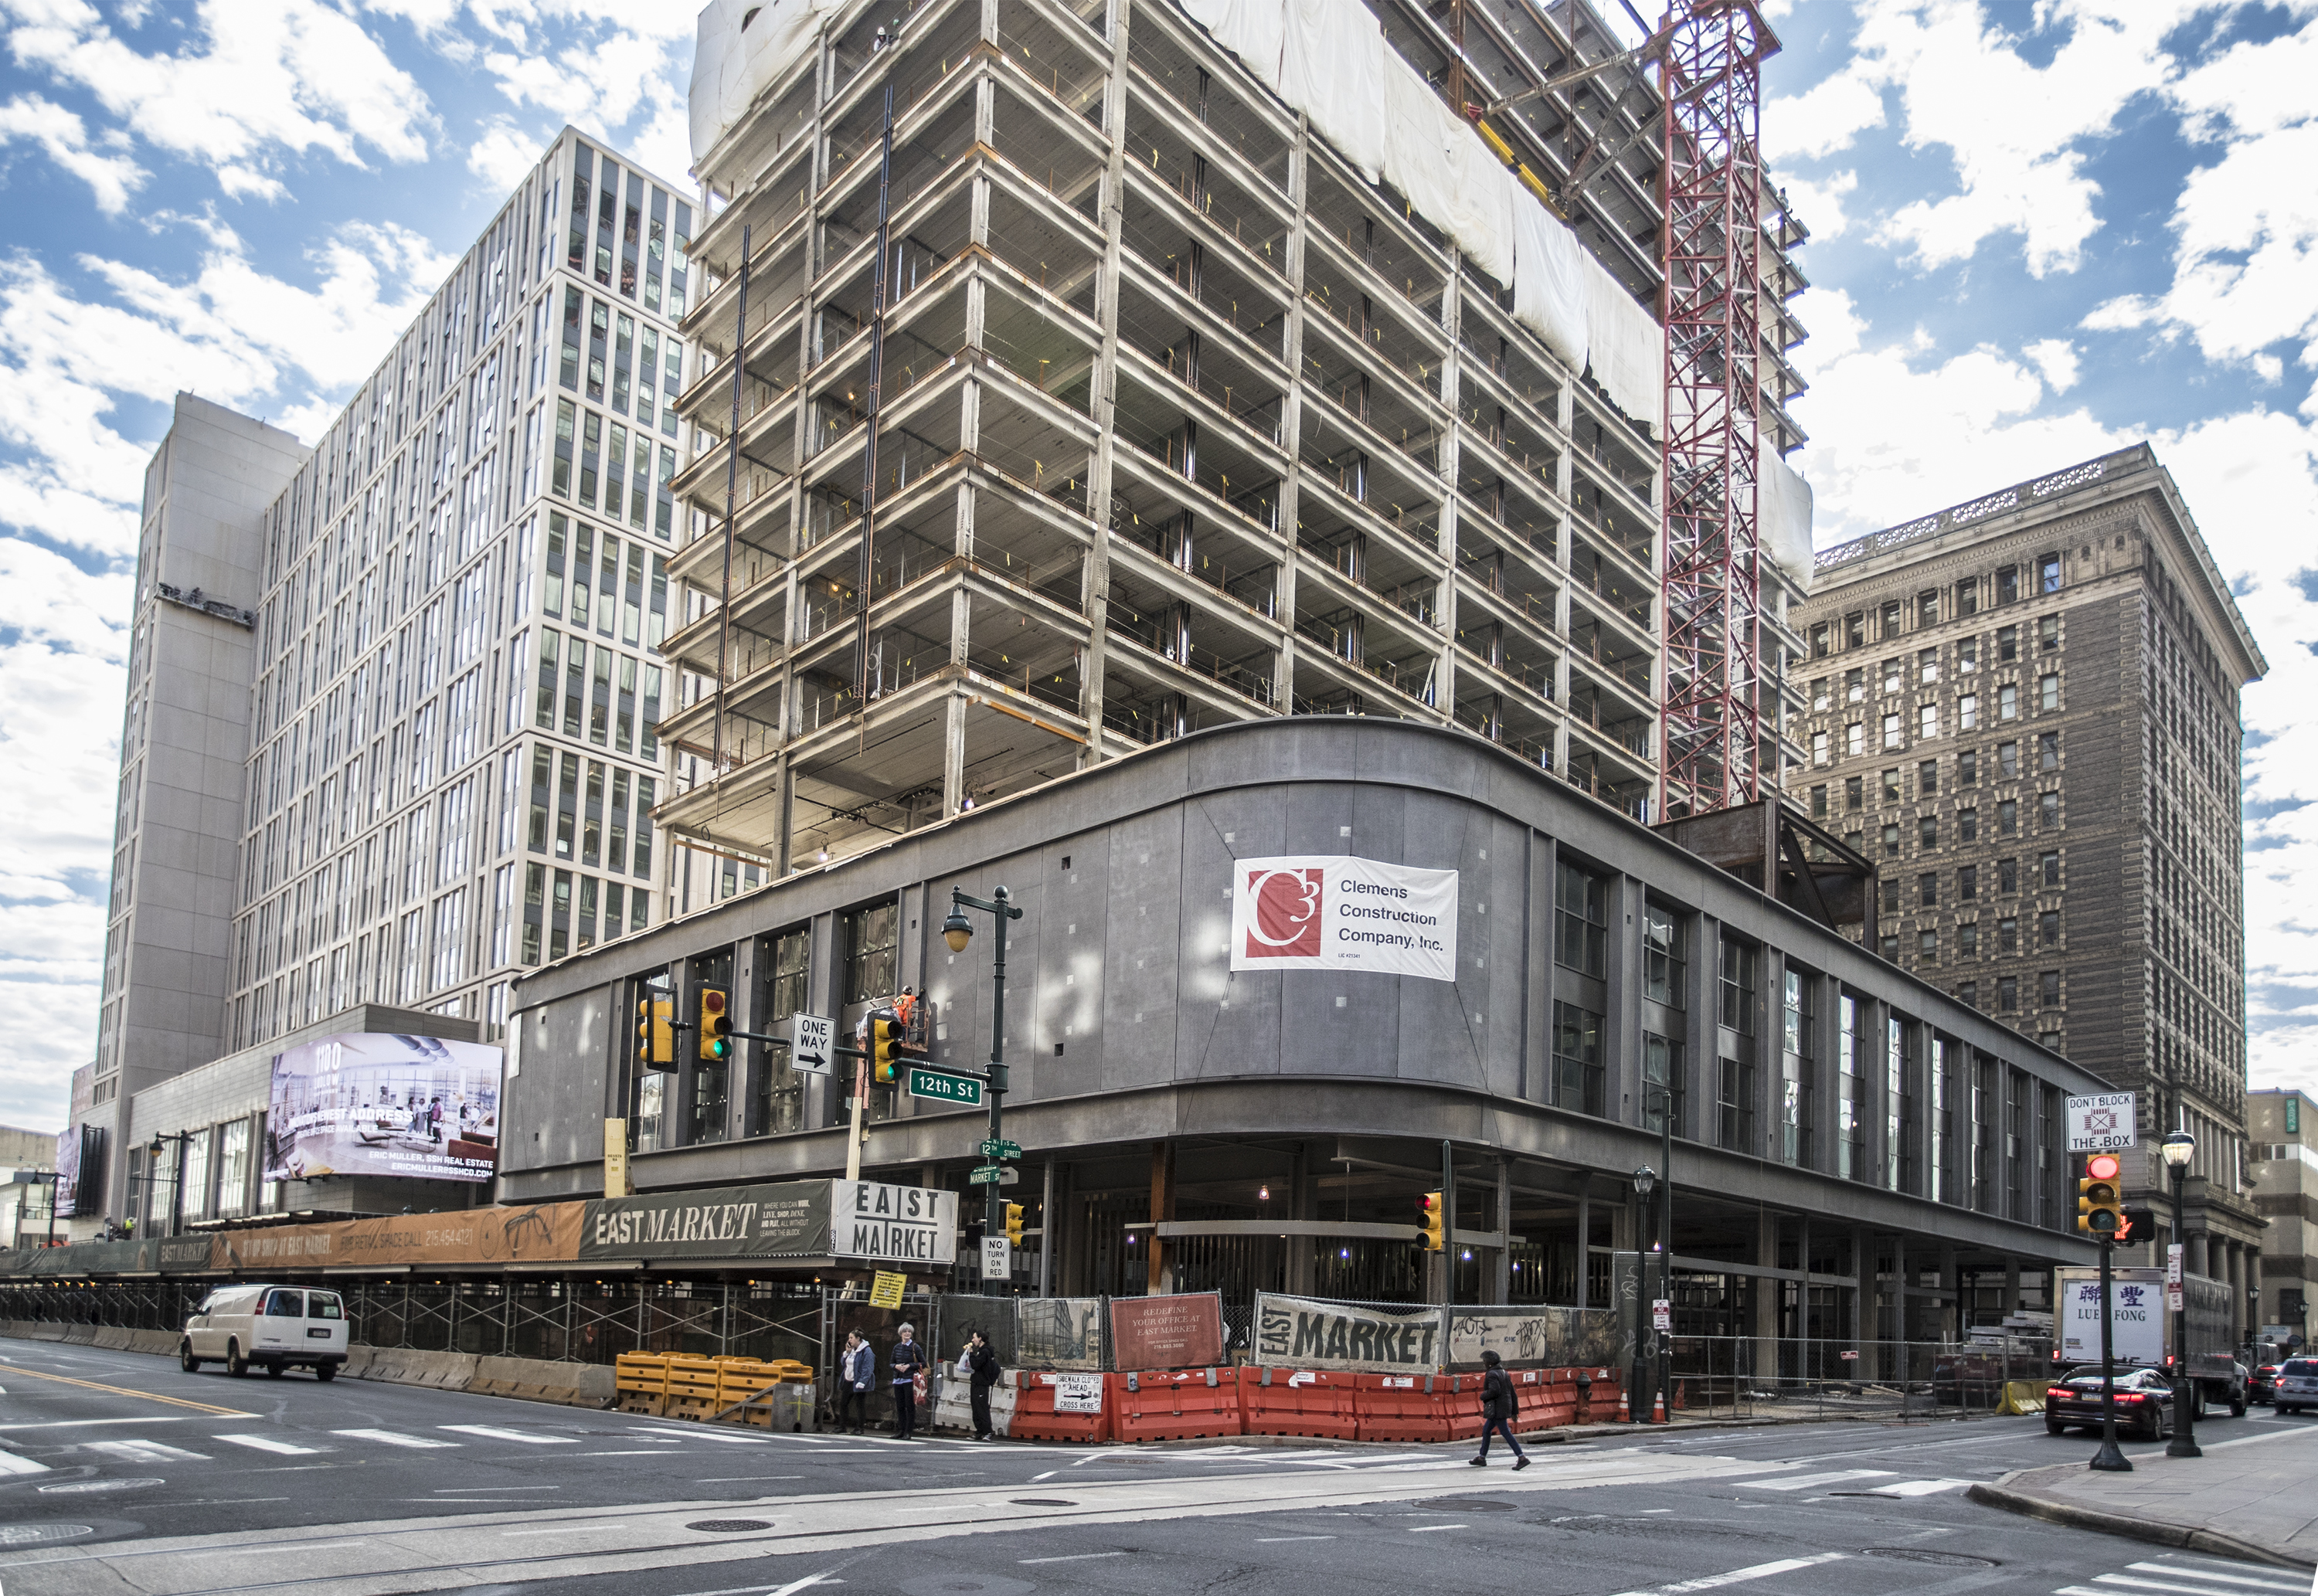 The corner of 12th and Market looking east at the curved facade at the East Market construction site where a T.J. Maxx joins the retail roster in early 2018.